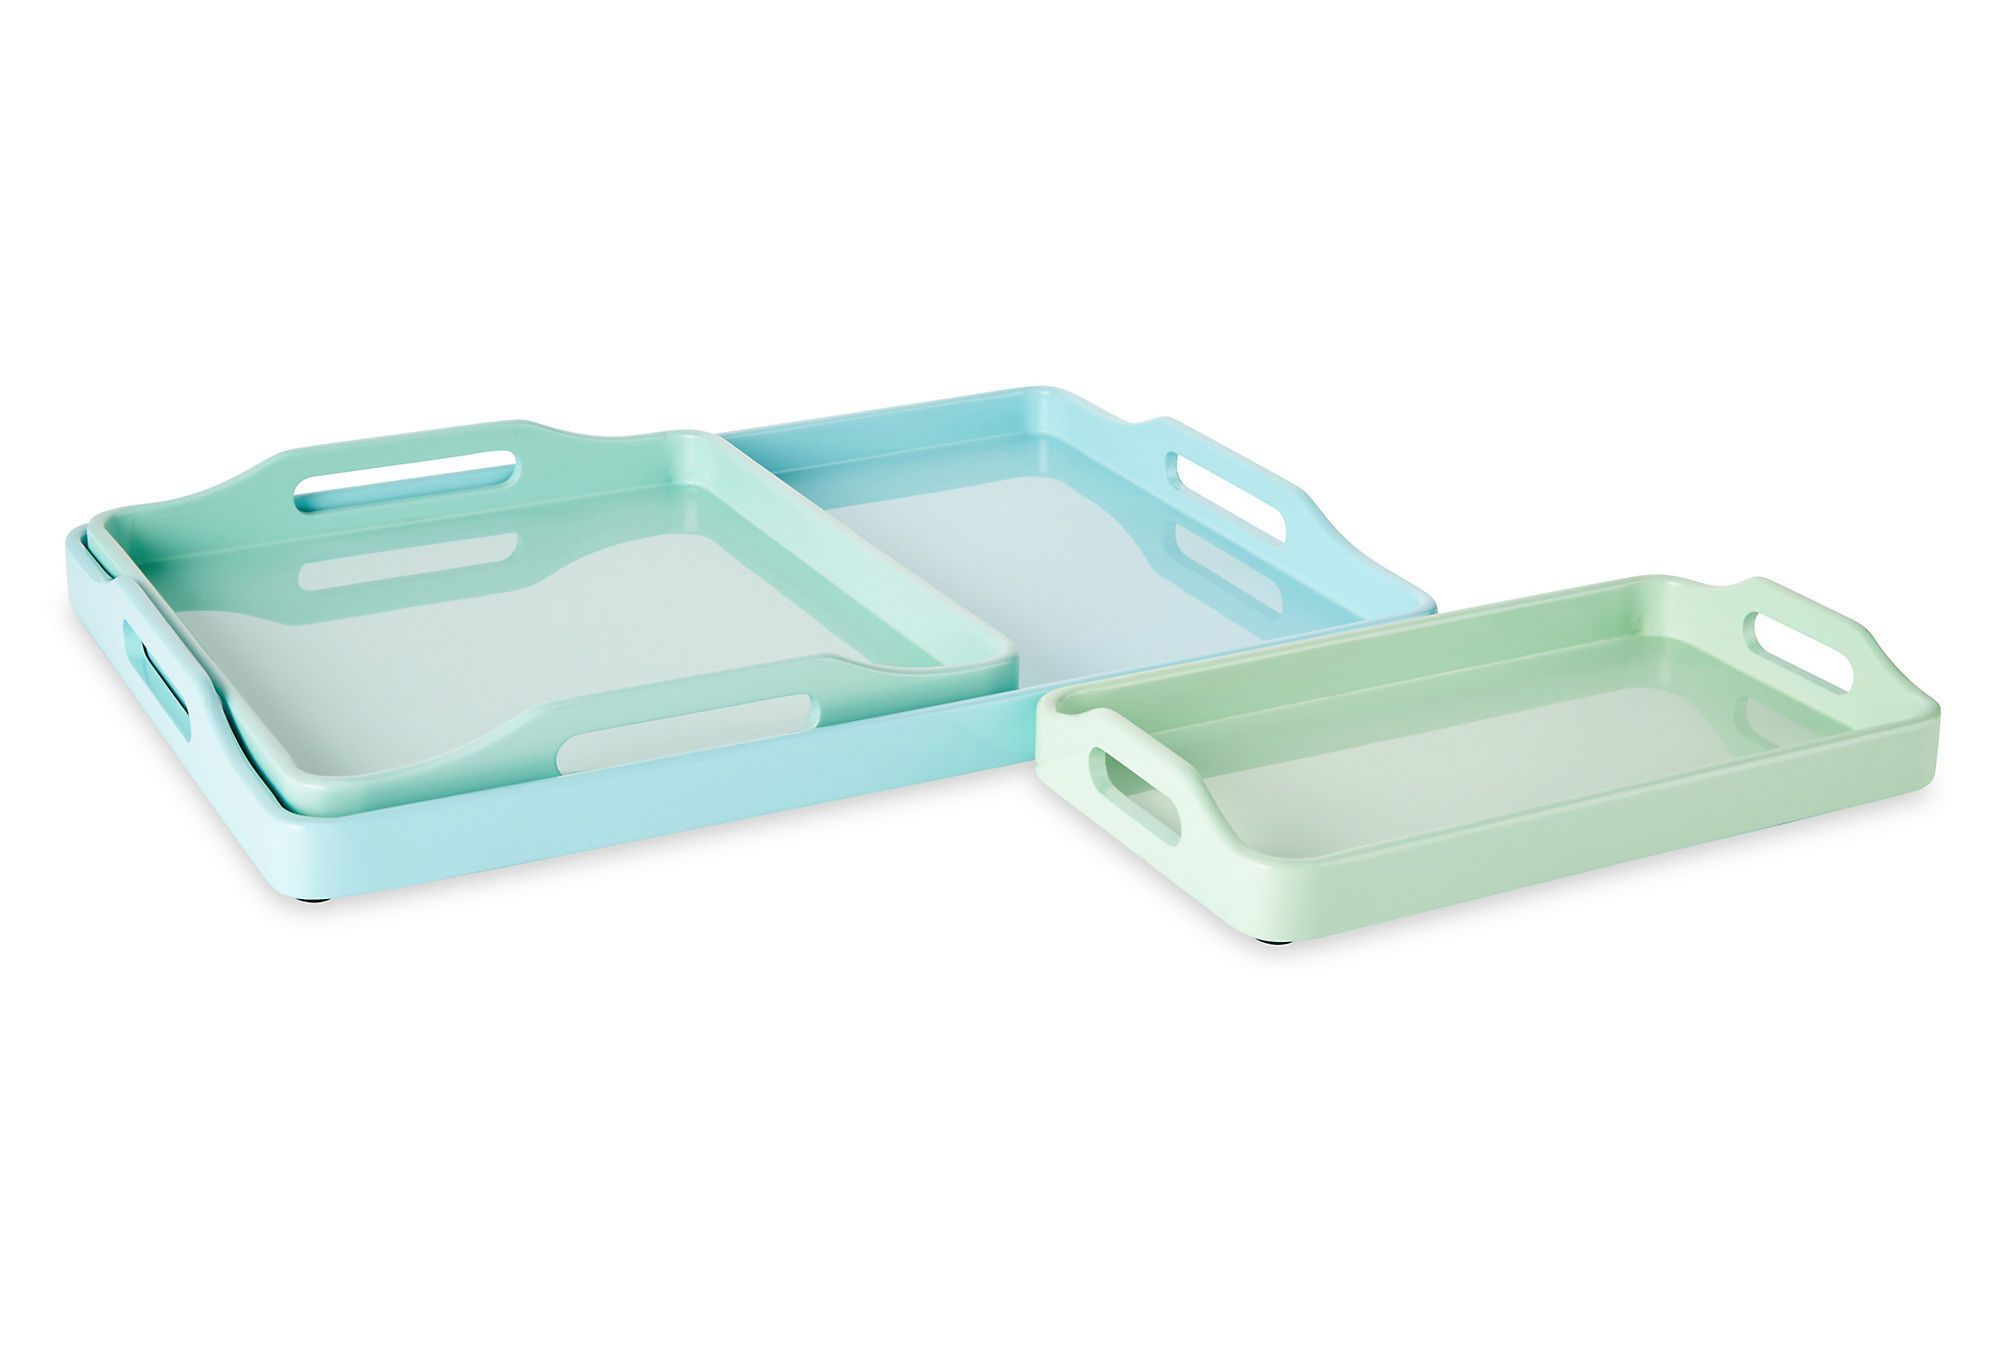 Asst. 3 Stackable Trays, Mint | Downstairs | One Kings Lane